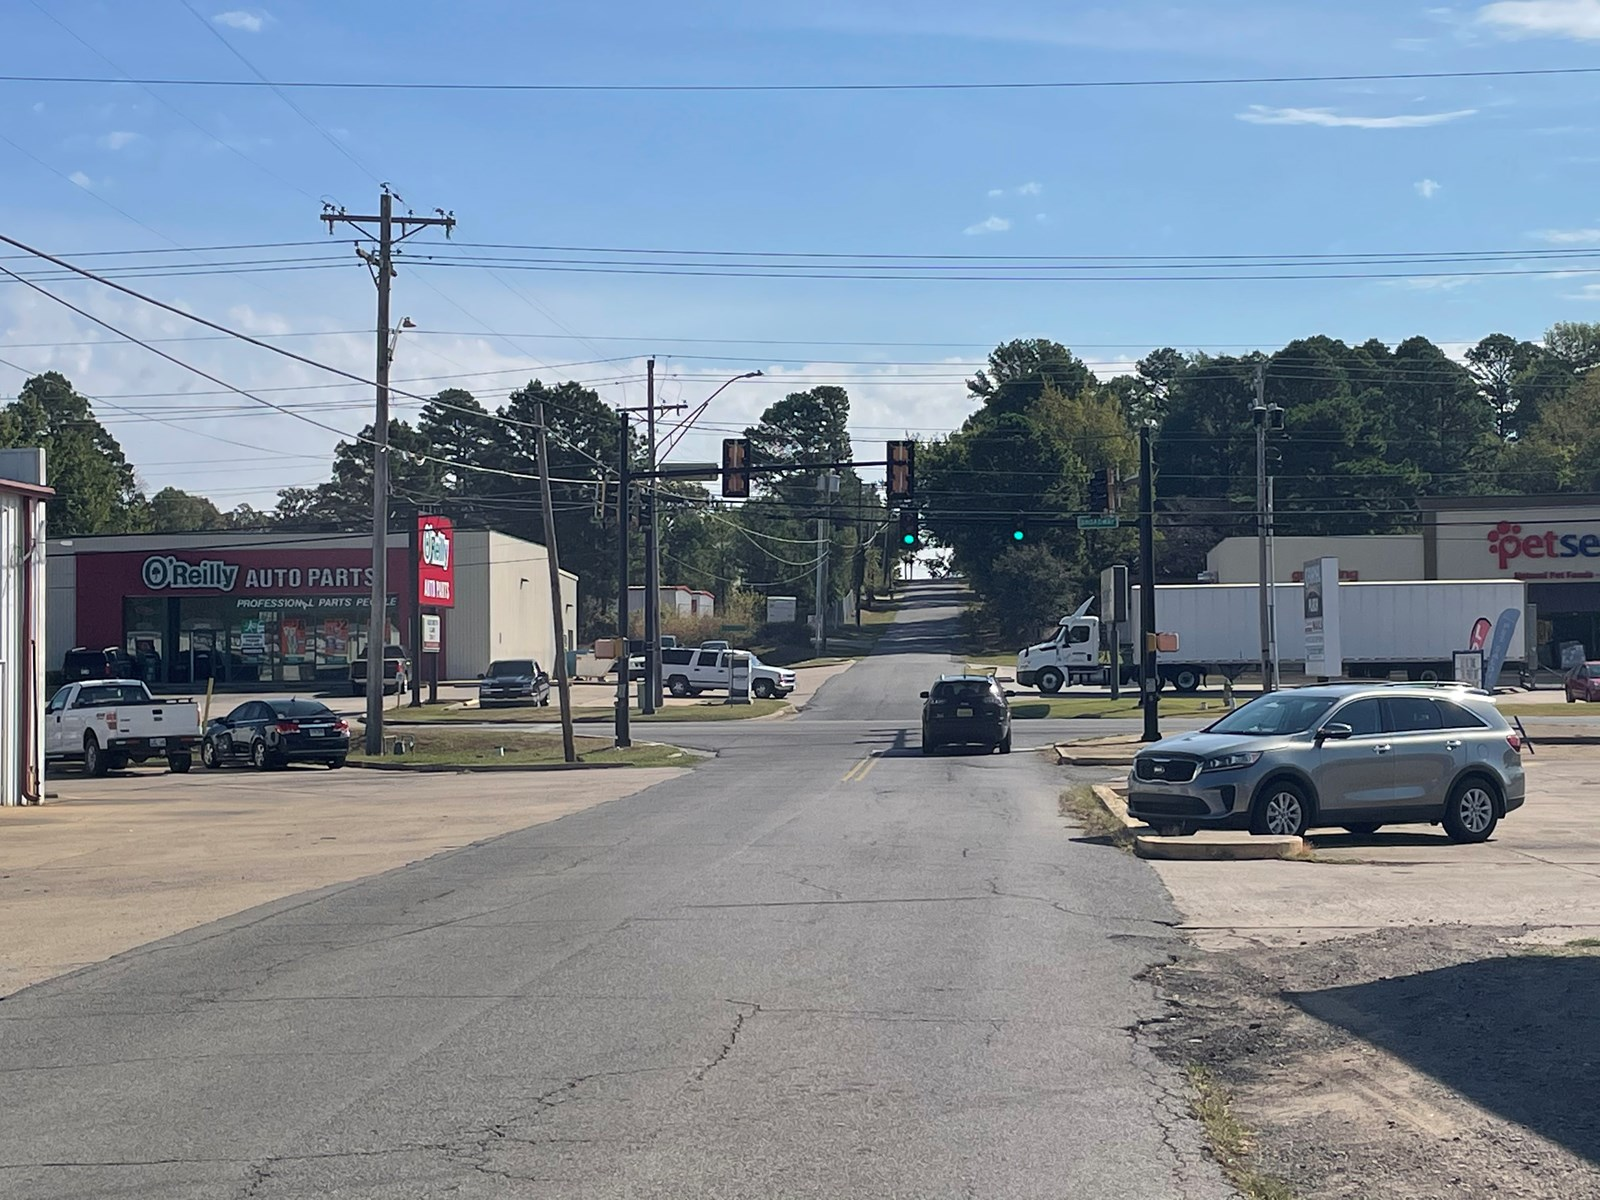 COMMERCIAL PROPERTY FOR SALE IN POTEAU, OKLAHOMA